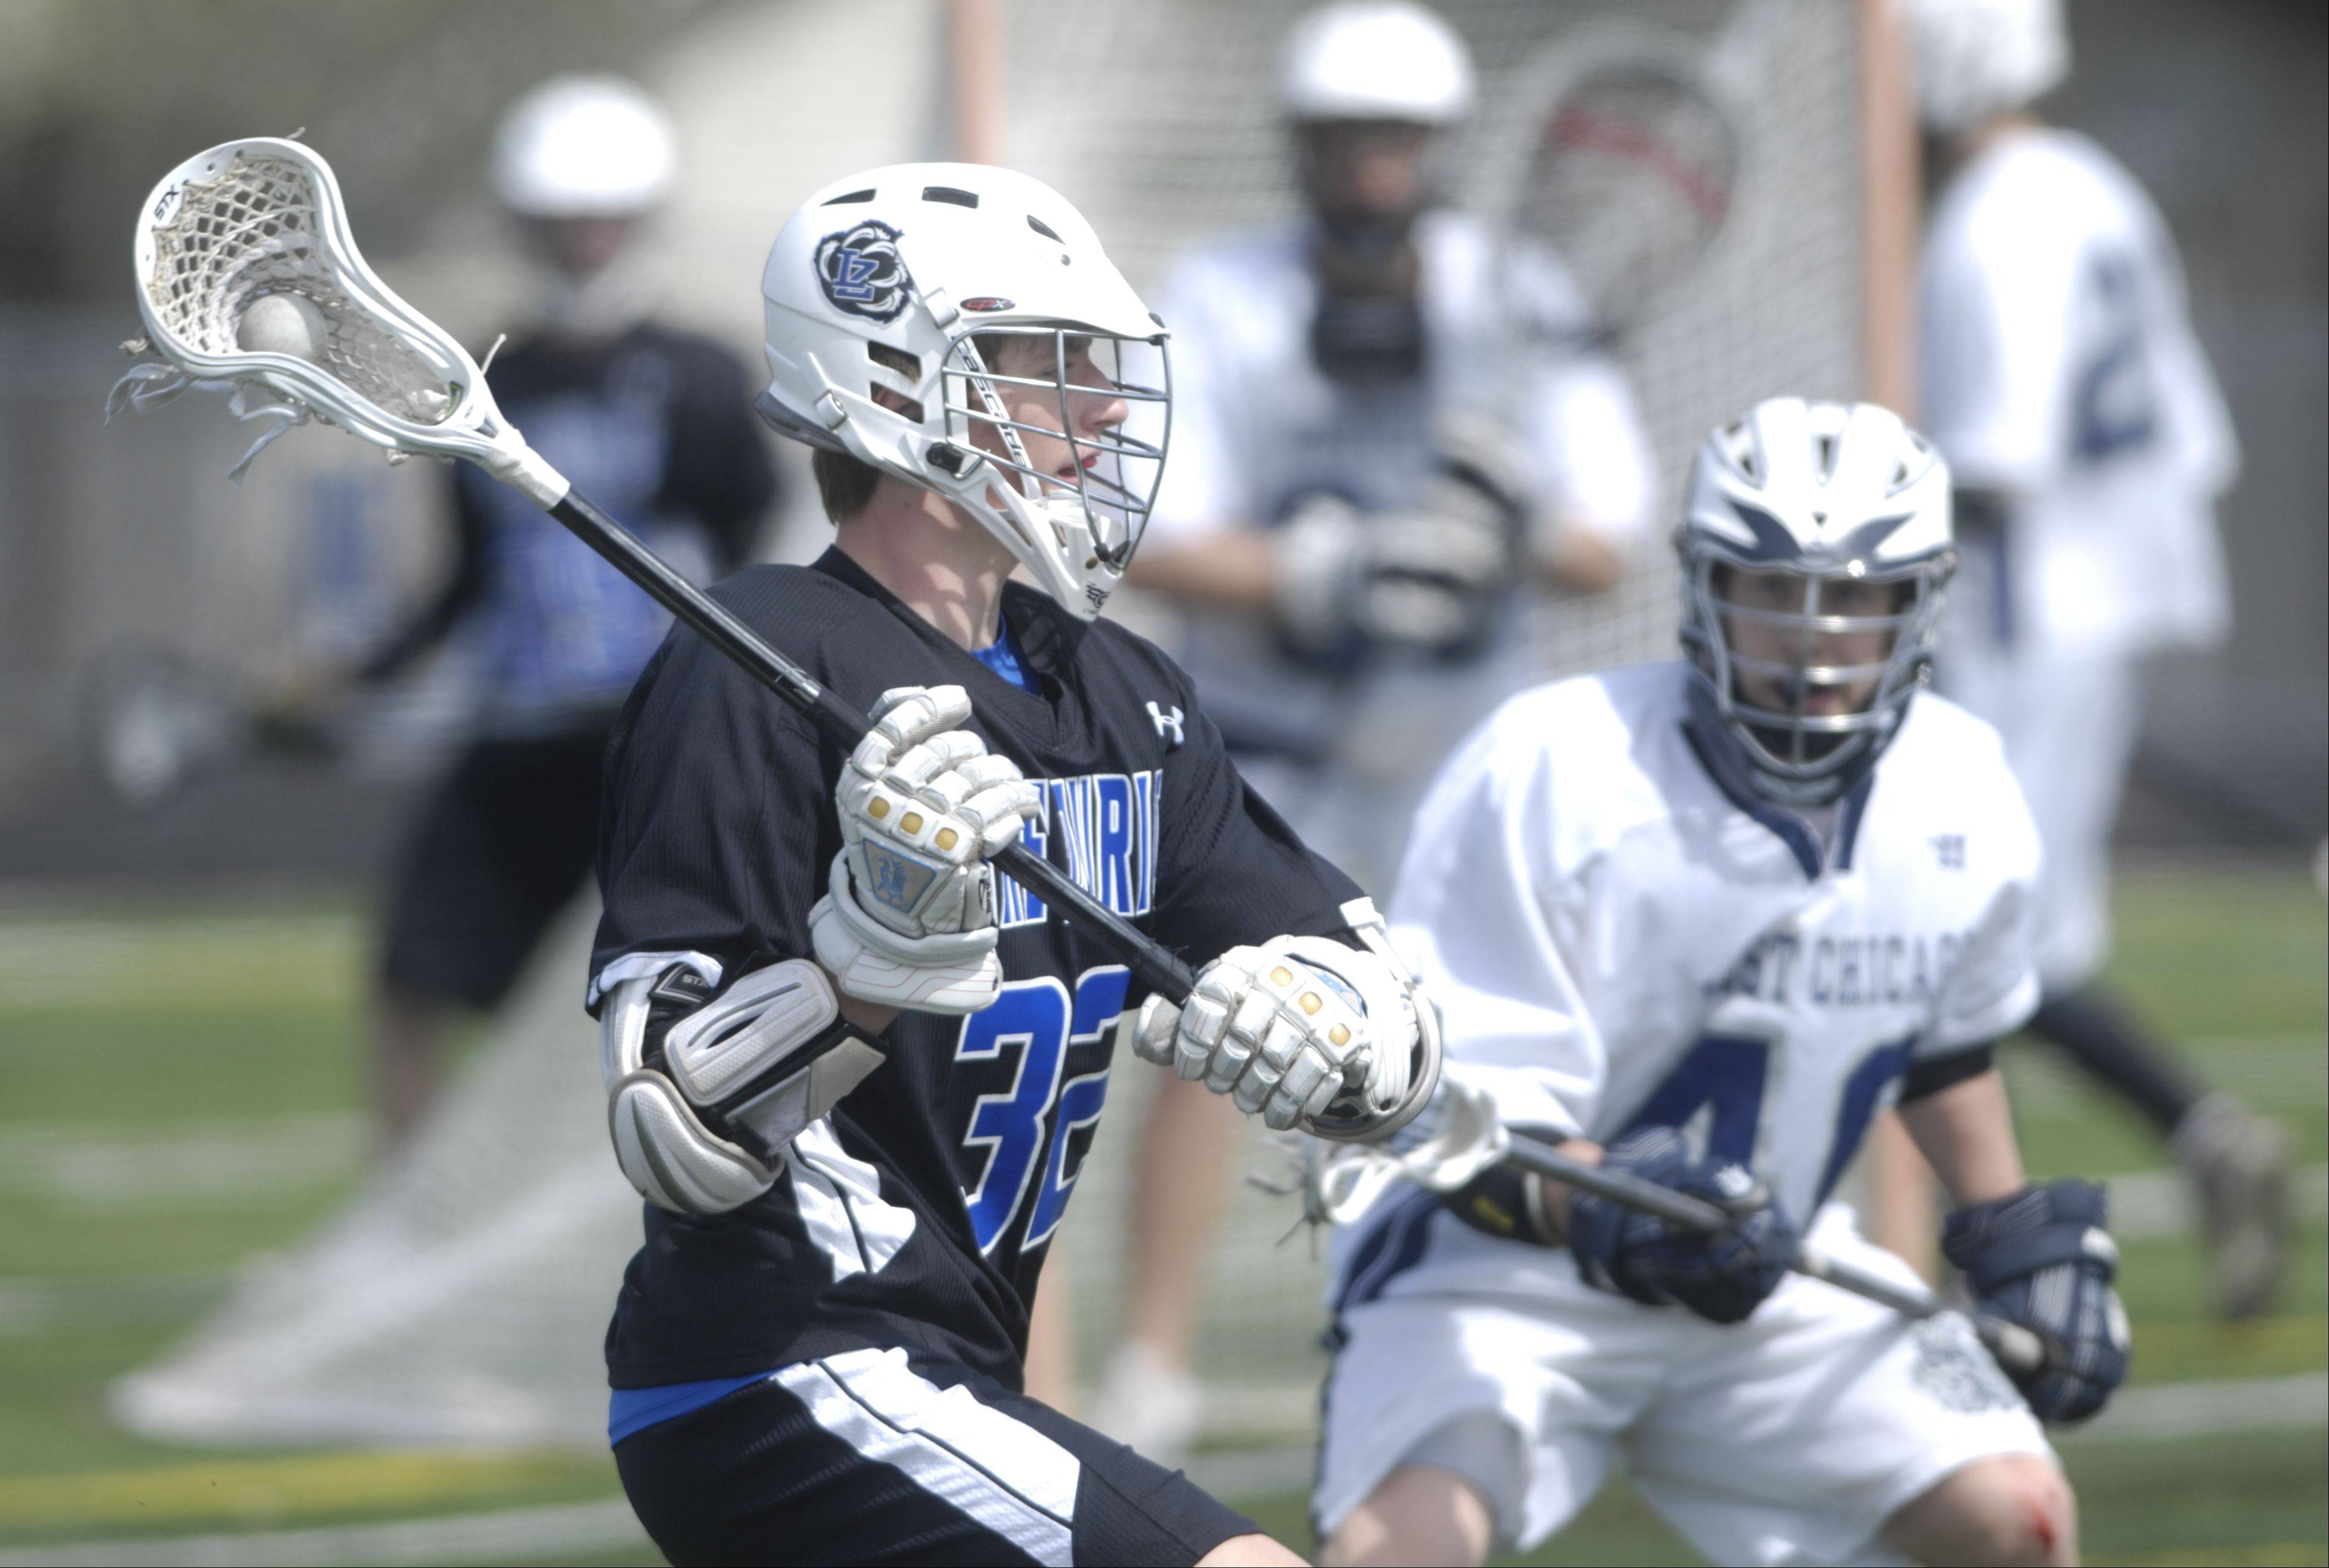 Images from the West Chicago vs. Lake Zurich boys lacrosse match at Hoffman Estates on Thursday, March 29, 2012.